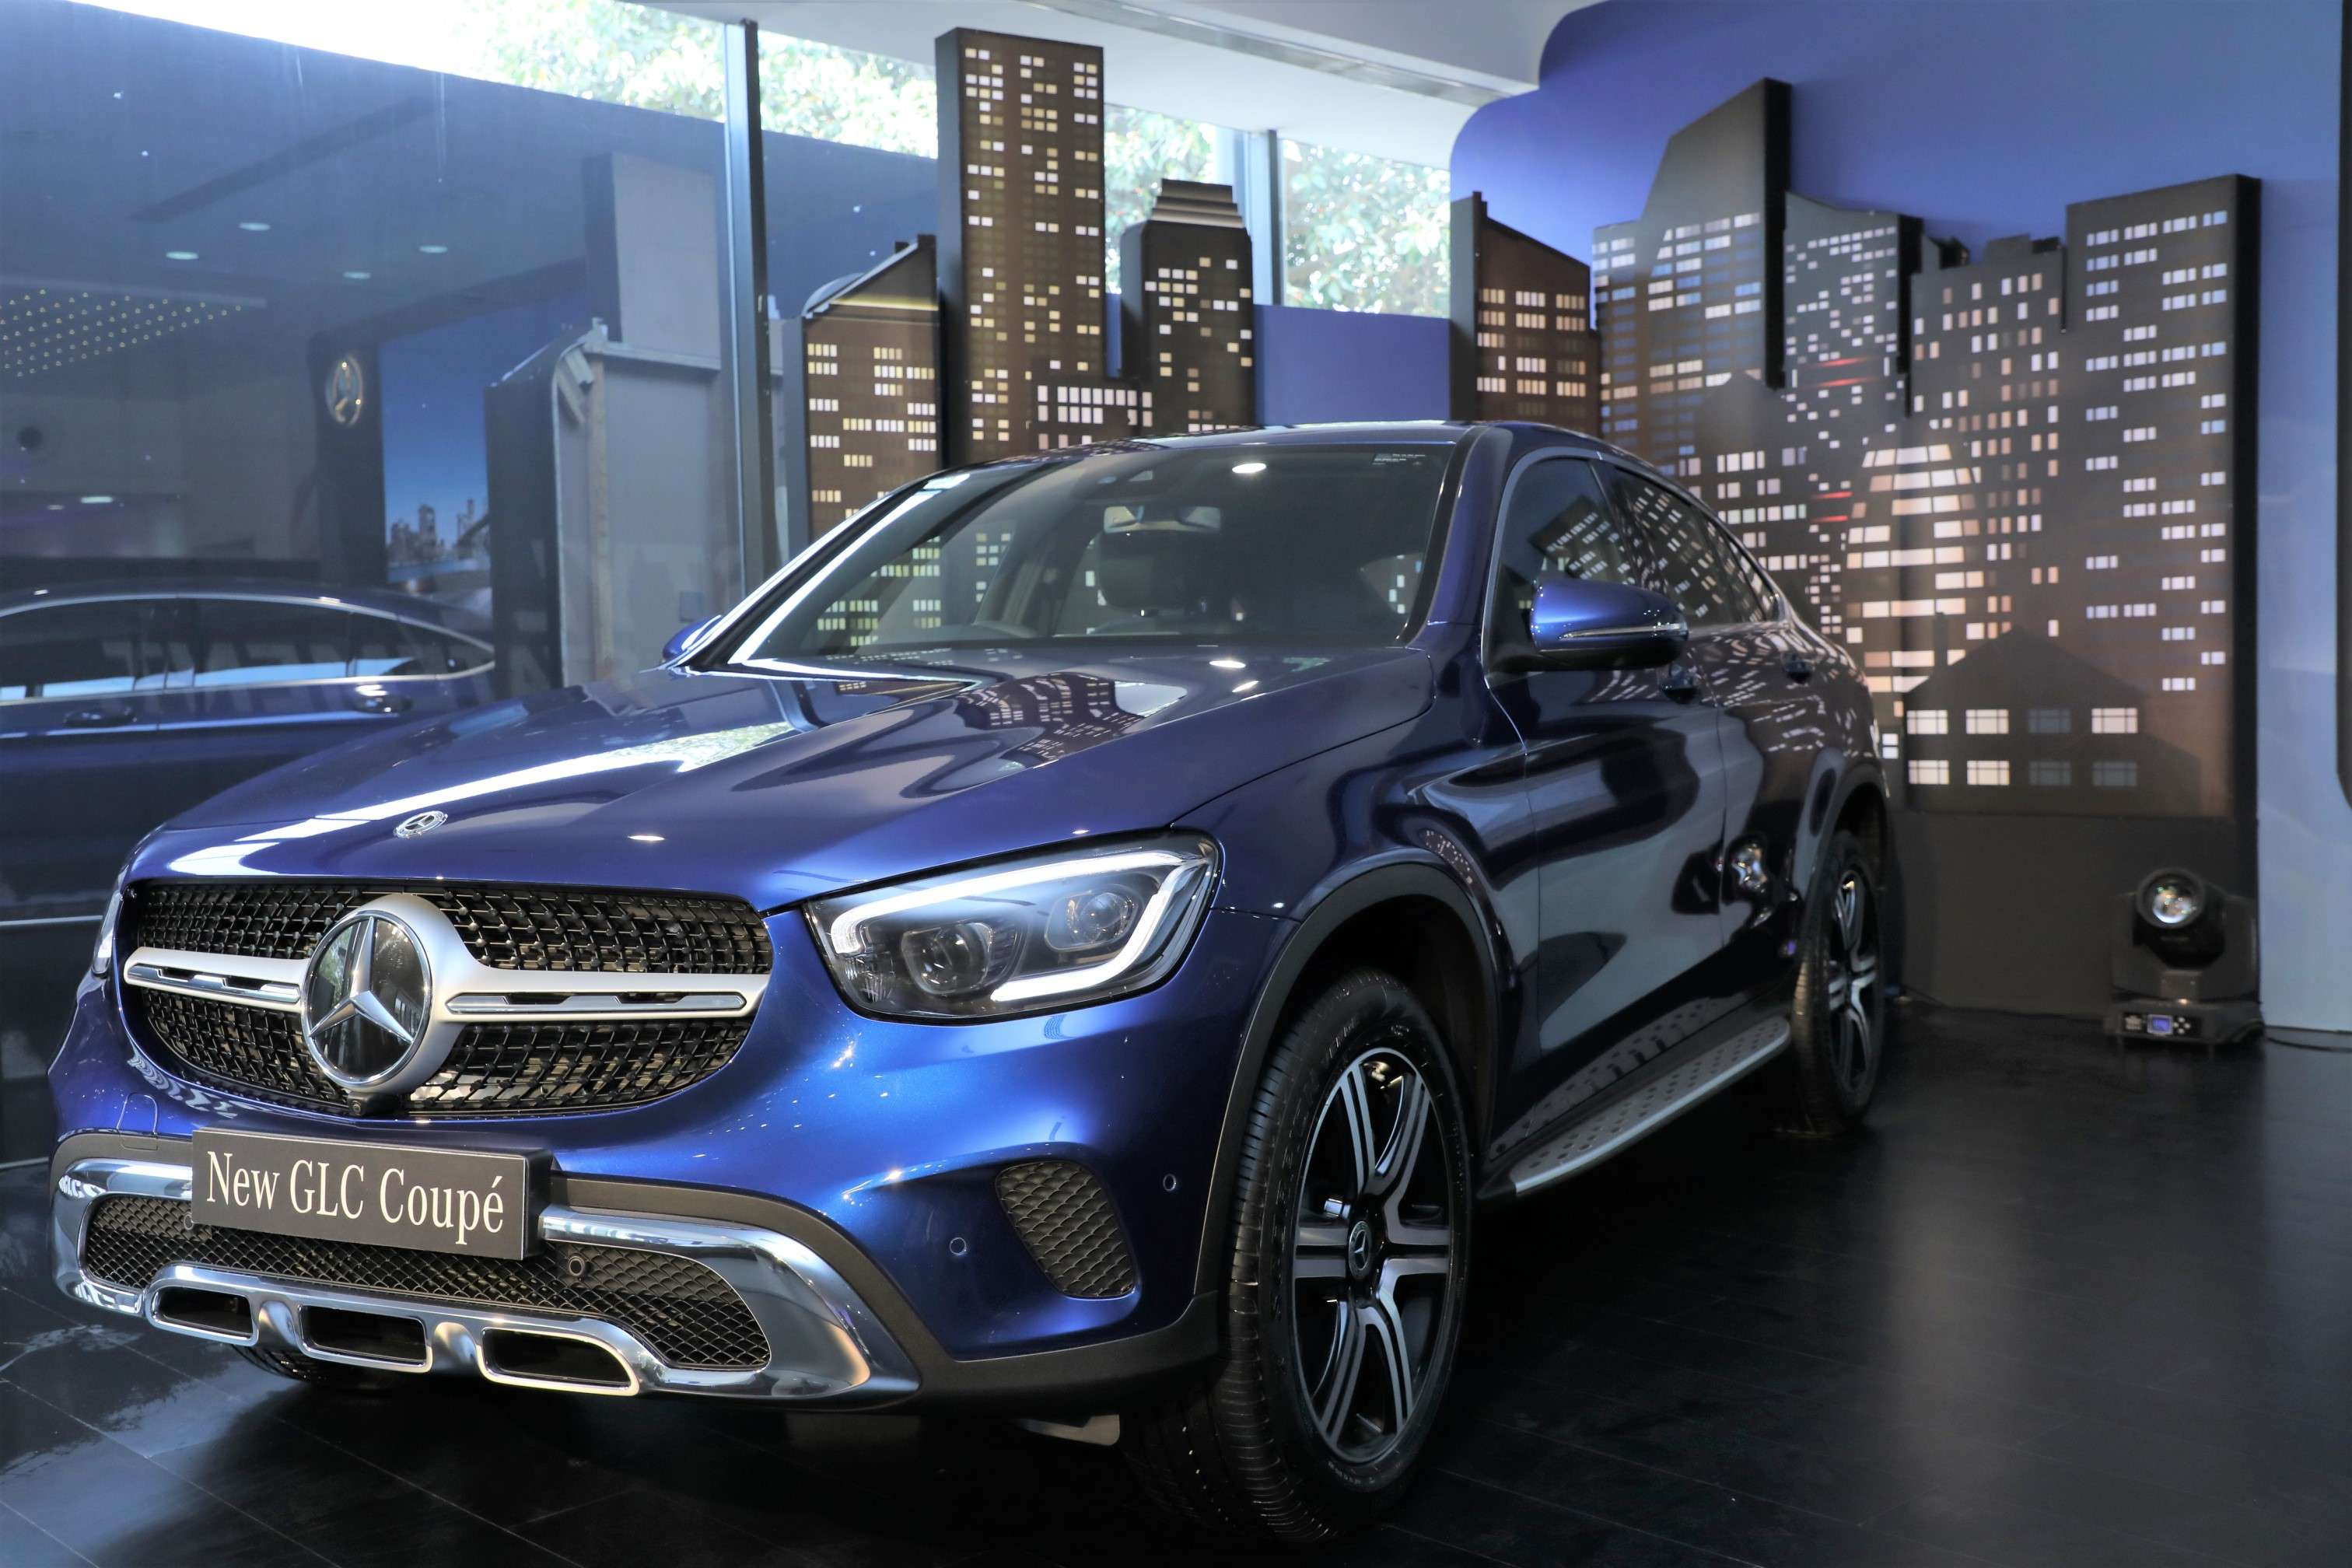 Mercedes Benz India: Mercedes-Benz India H1 sales down 55% at ...